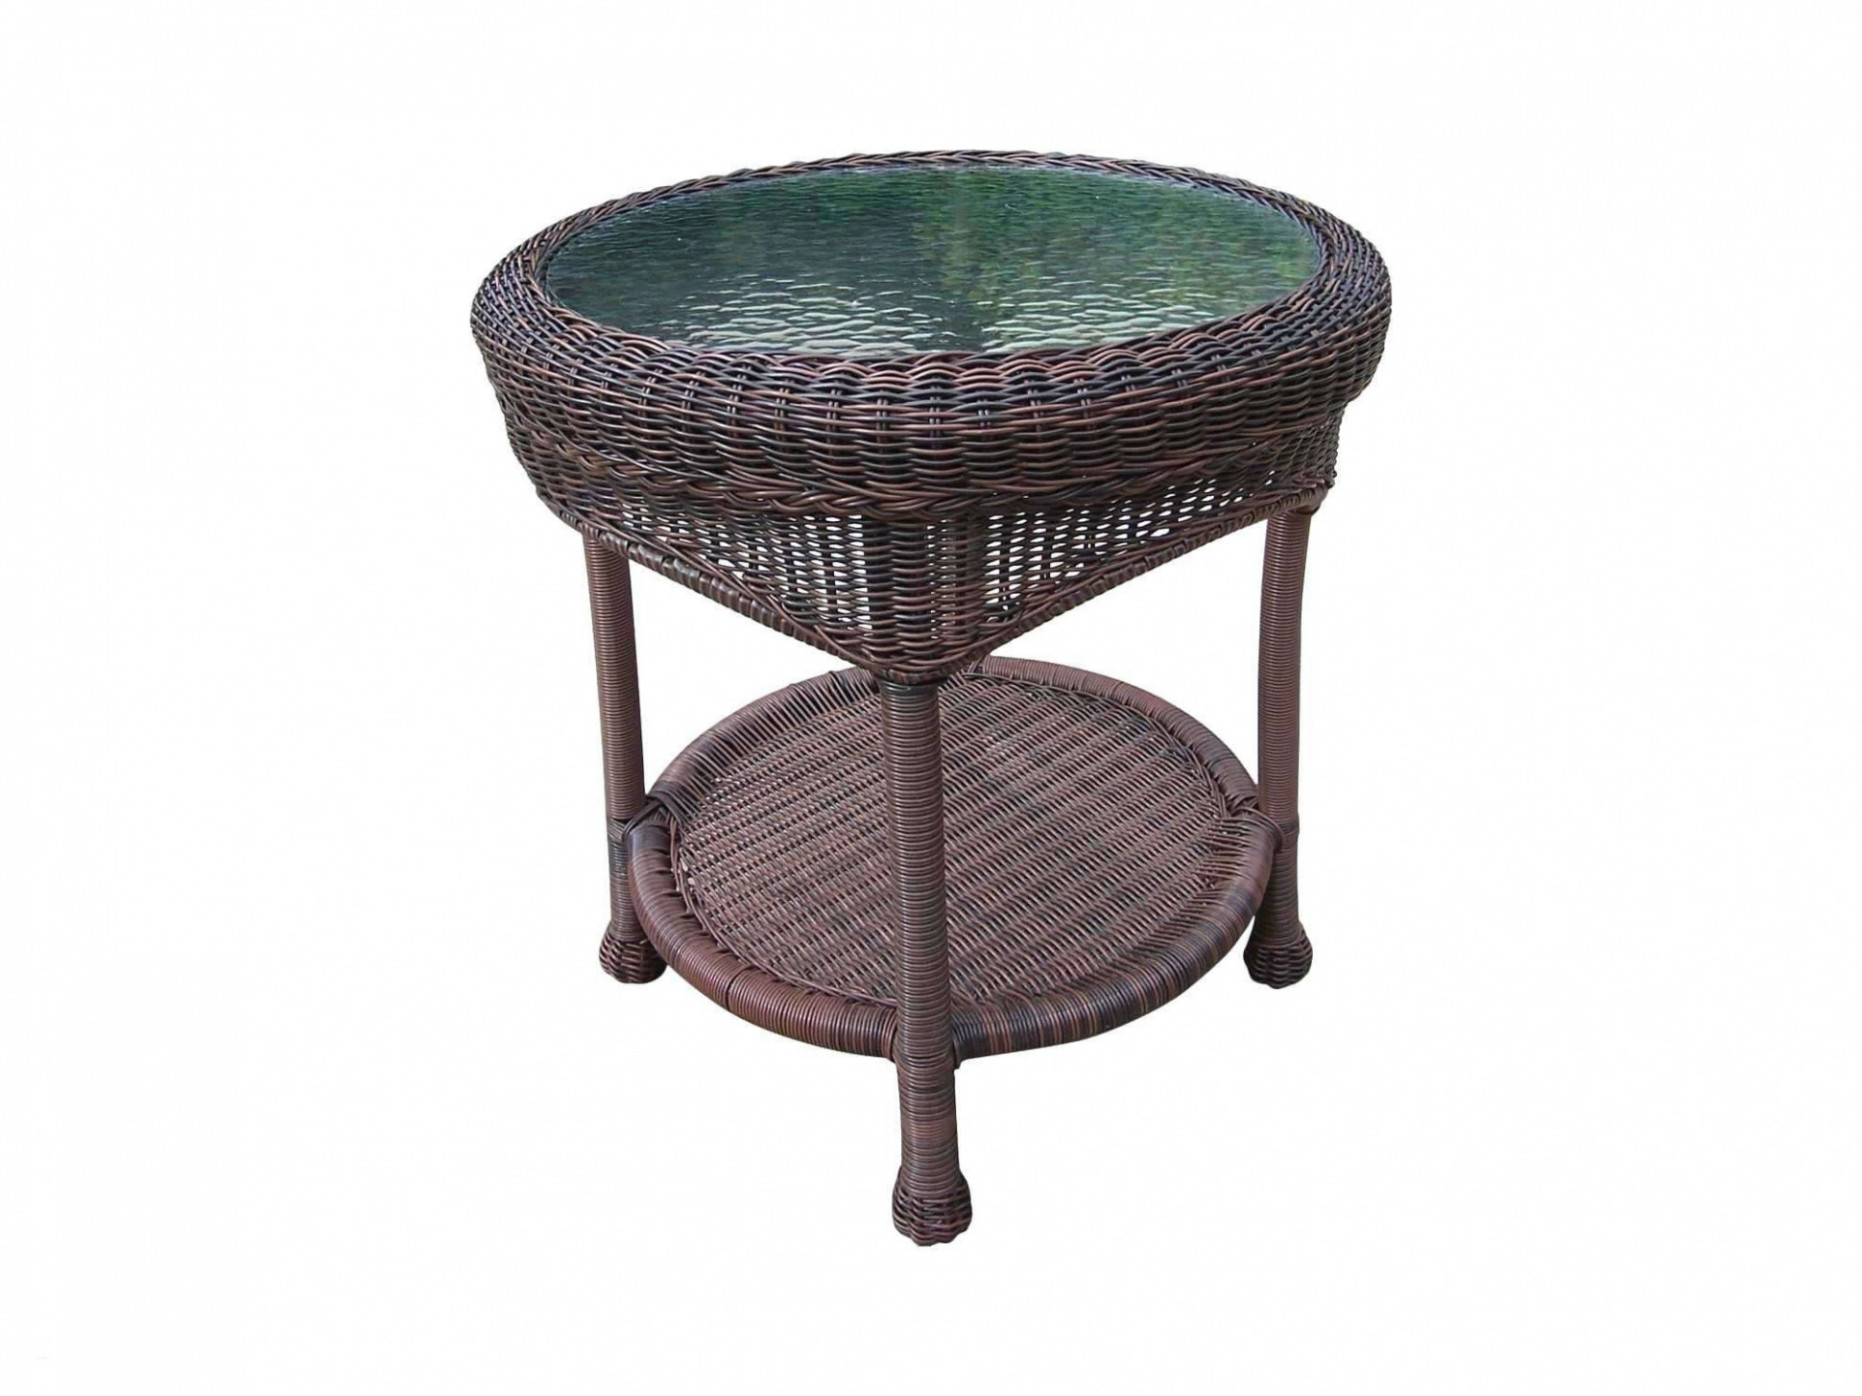 small round table set best impressive patio coffee concrete outdoor side cover new vintage furniture home dining sets laminate threshold bar pier one coupon garden accent mosaic